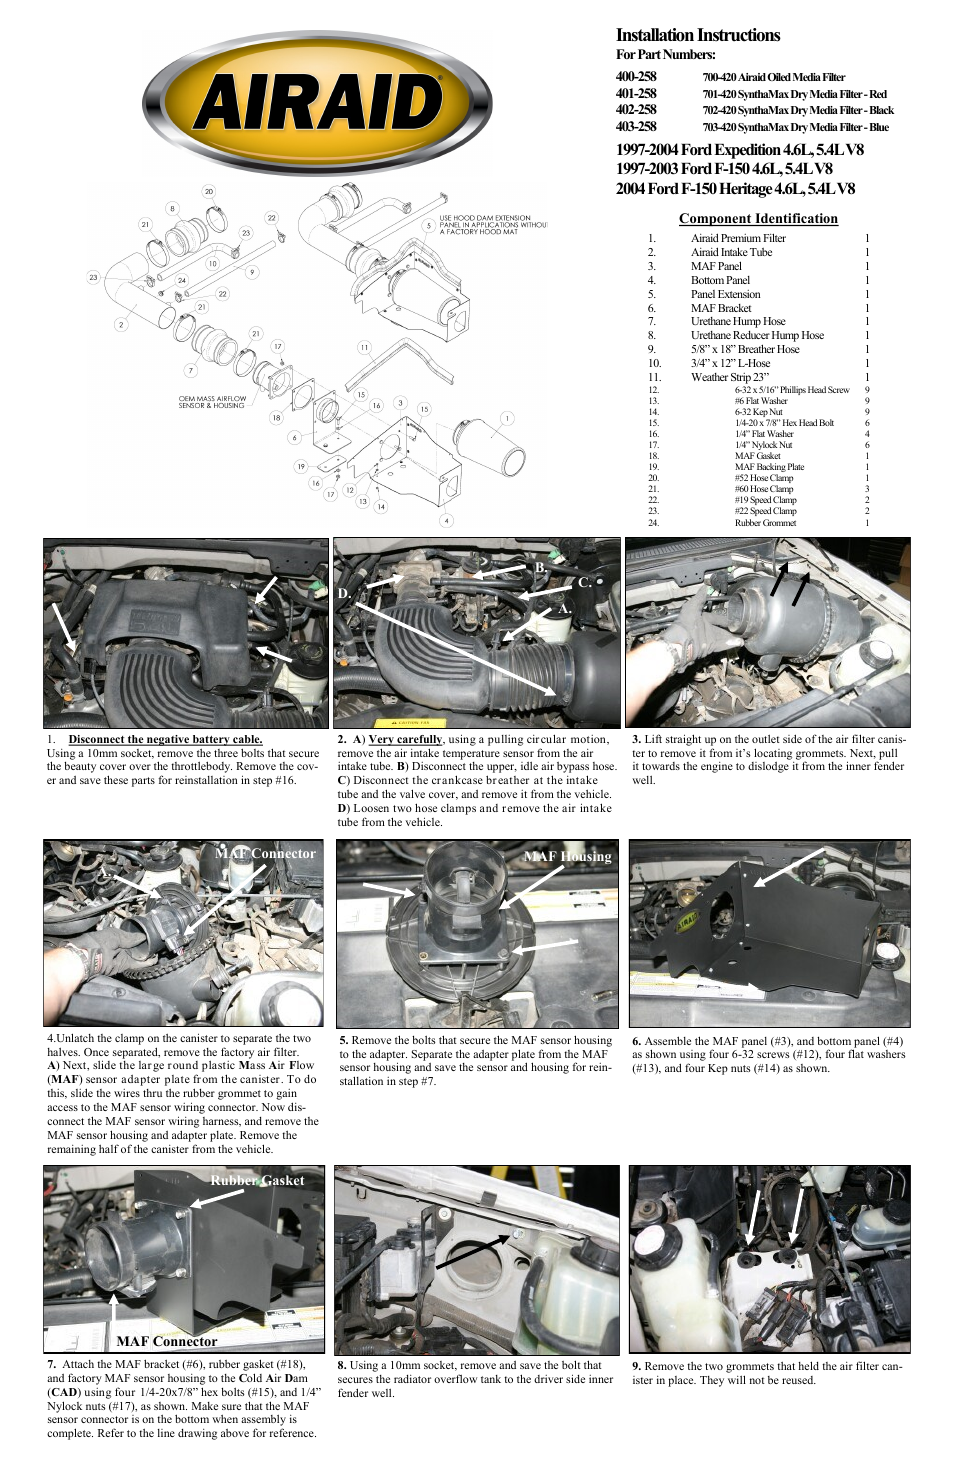 airaid 400-258 user manual | 2 pages | also for: 401-258, 402-258, 403-258